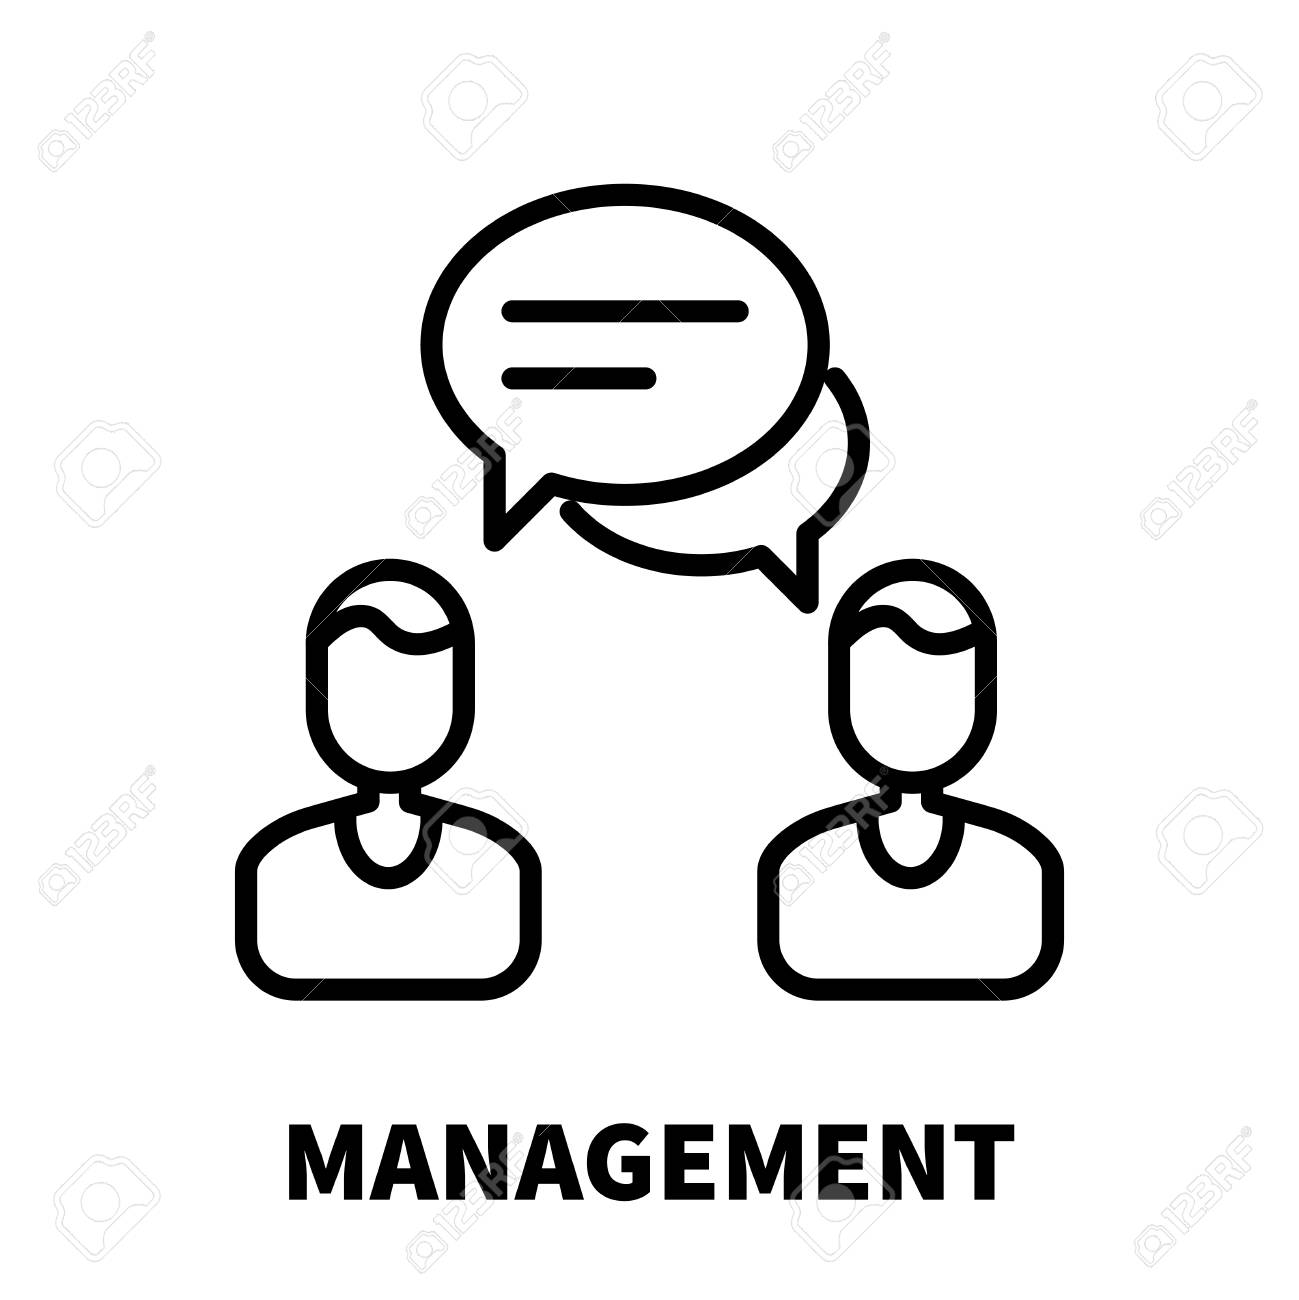 management icon or logo in modern line style high quality black Return to Workforce Resume Example management icon or logo in modern line style high quality black outline pictogram for web